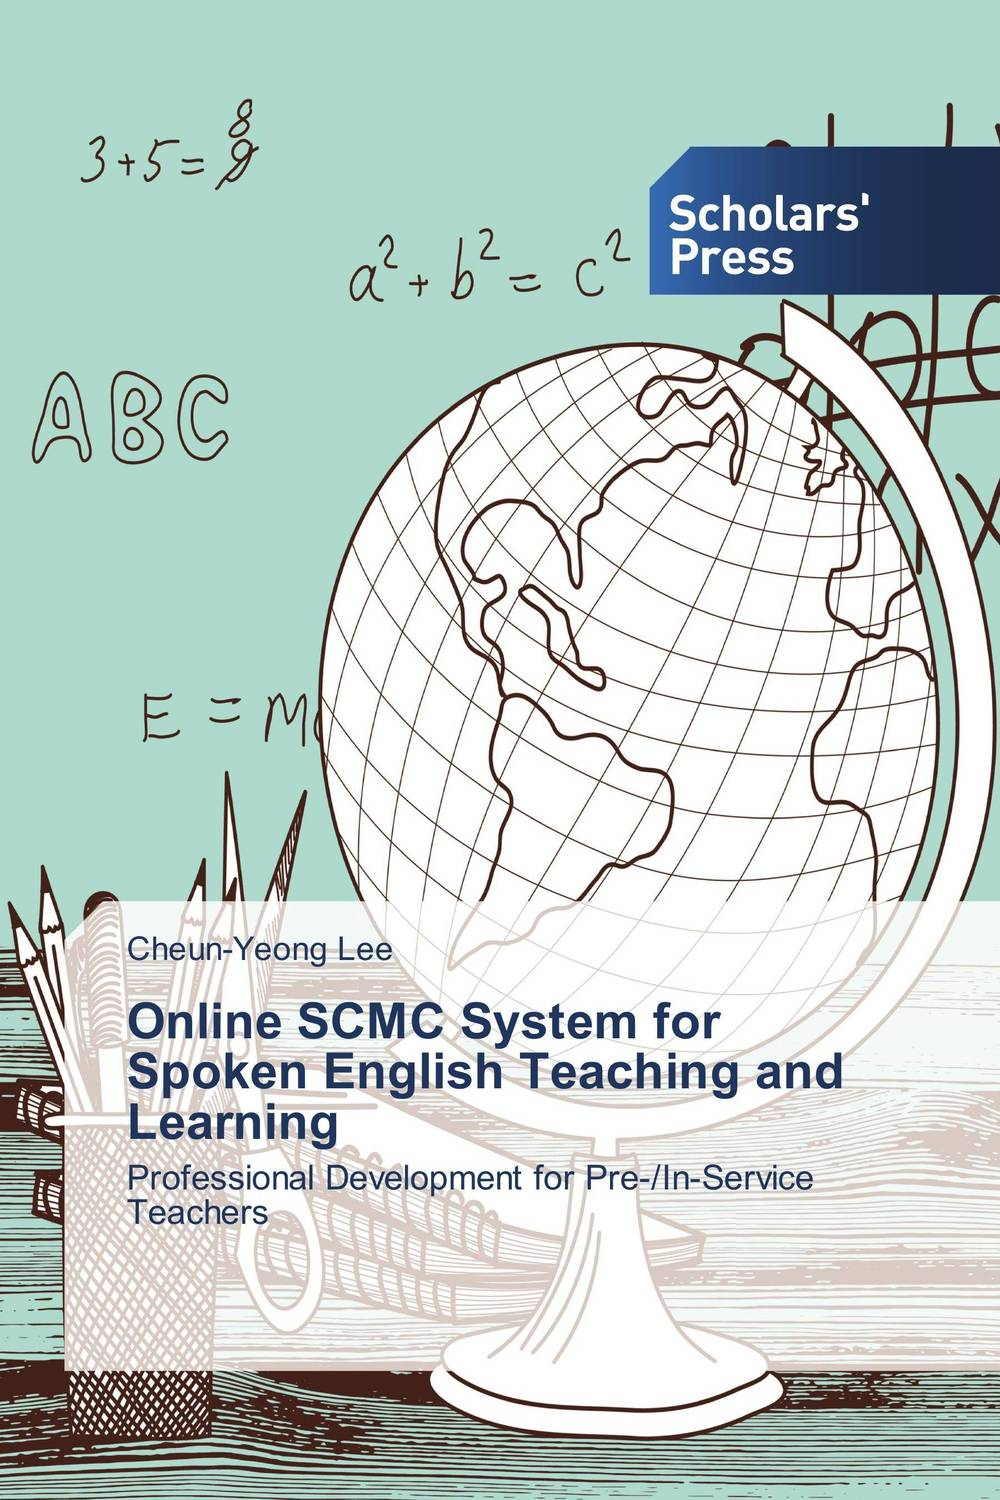 Online SCMC System for Spoken English Teaching and Learning